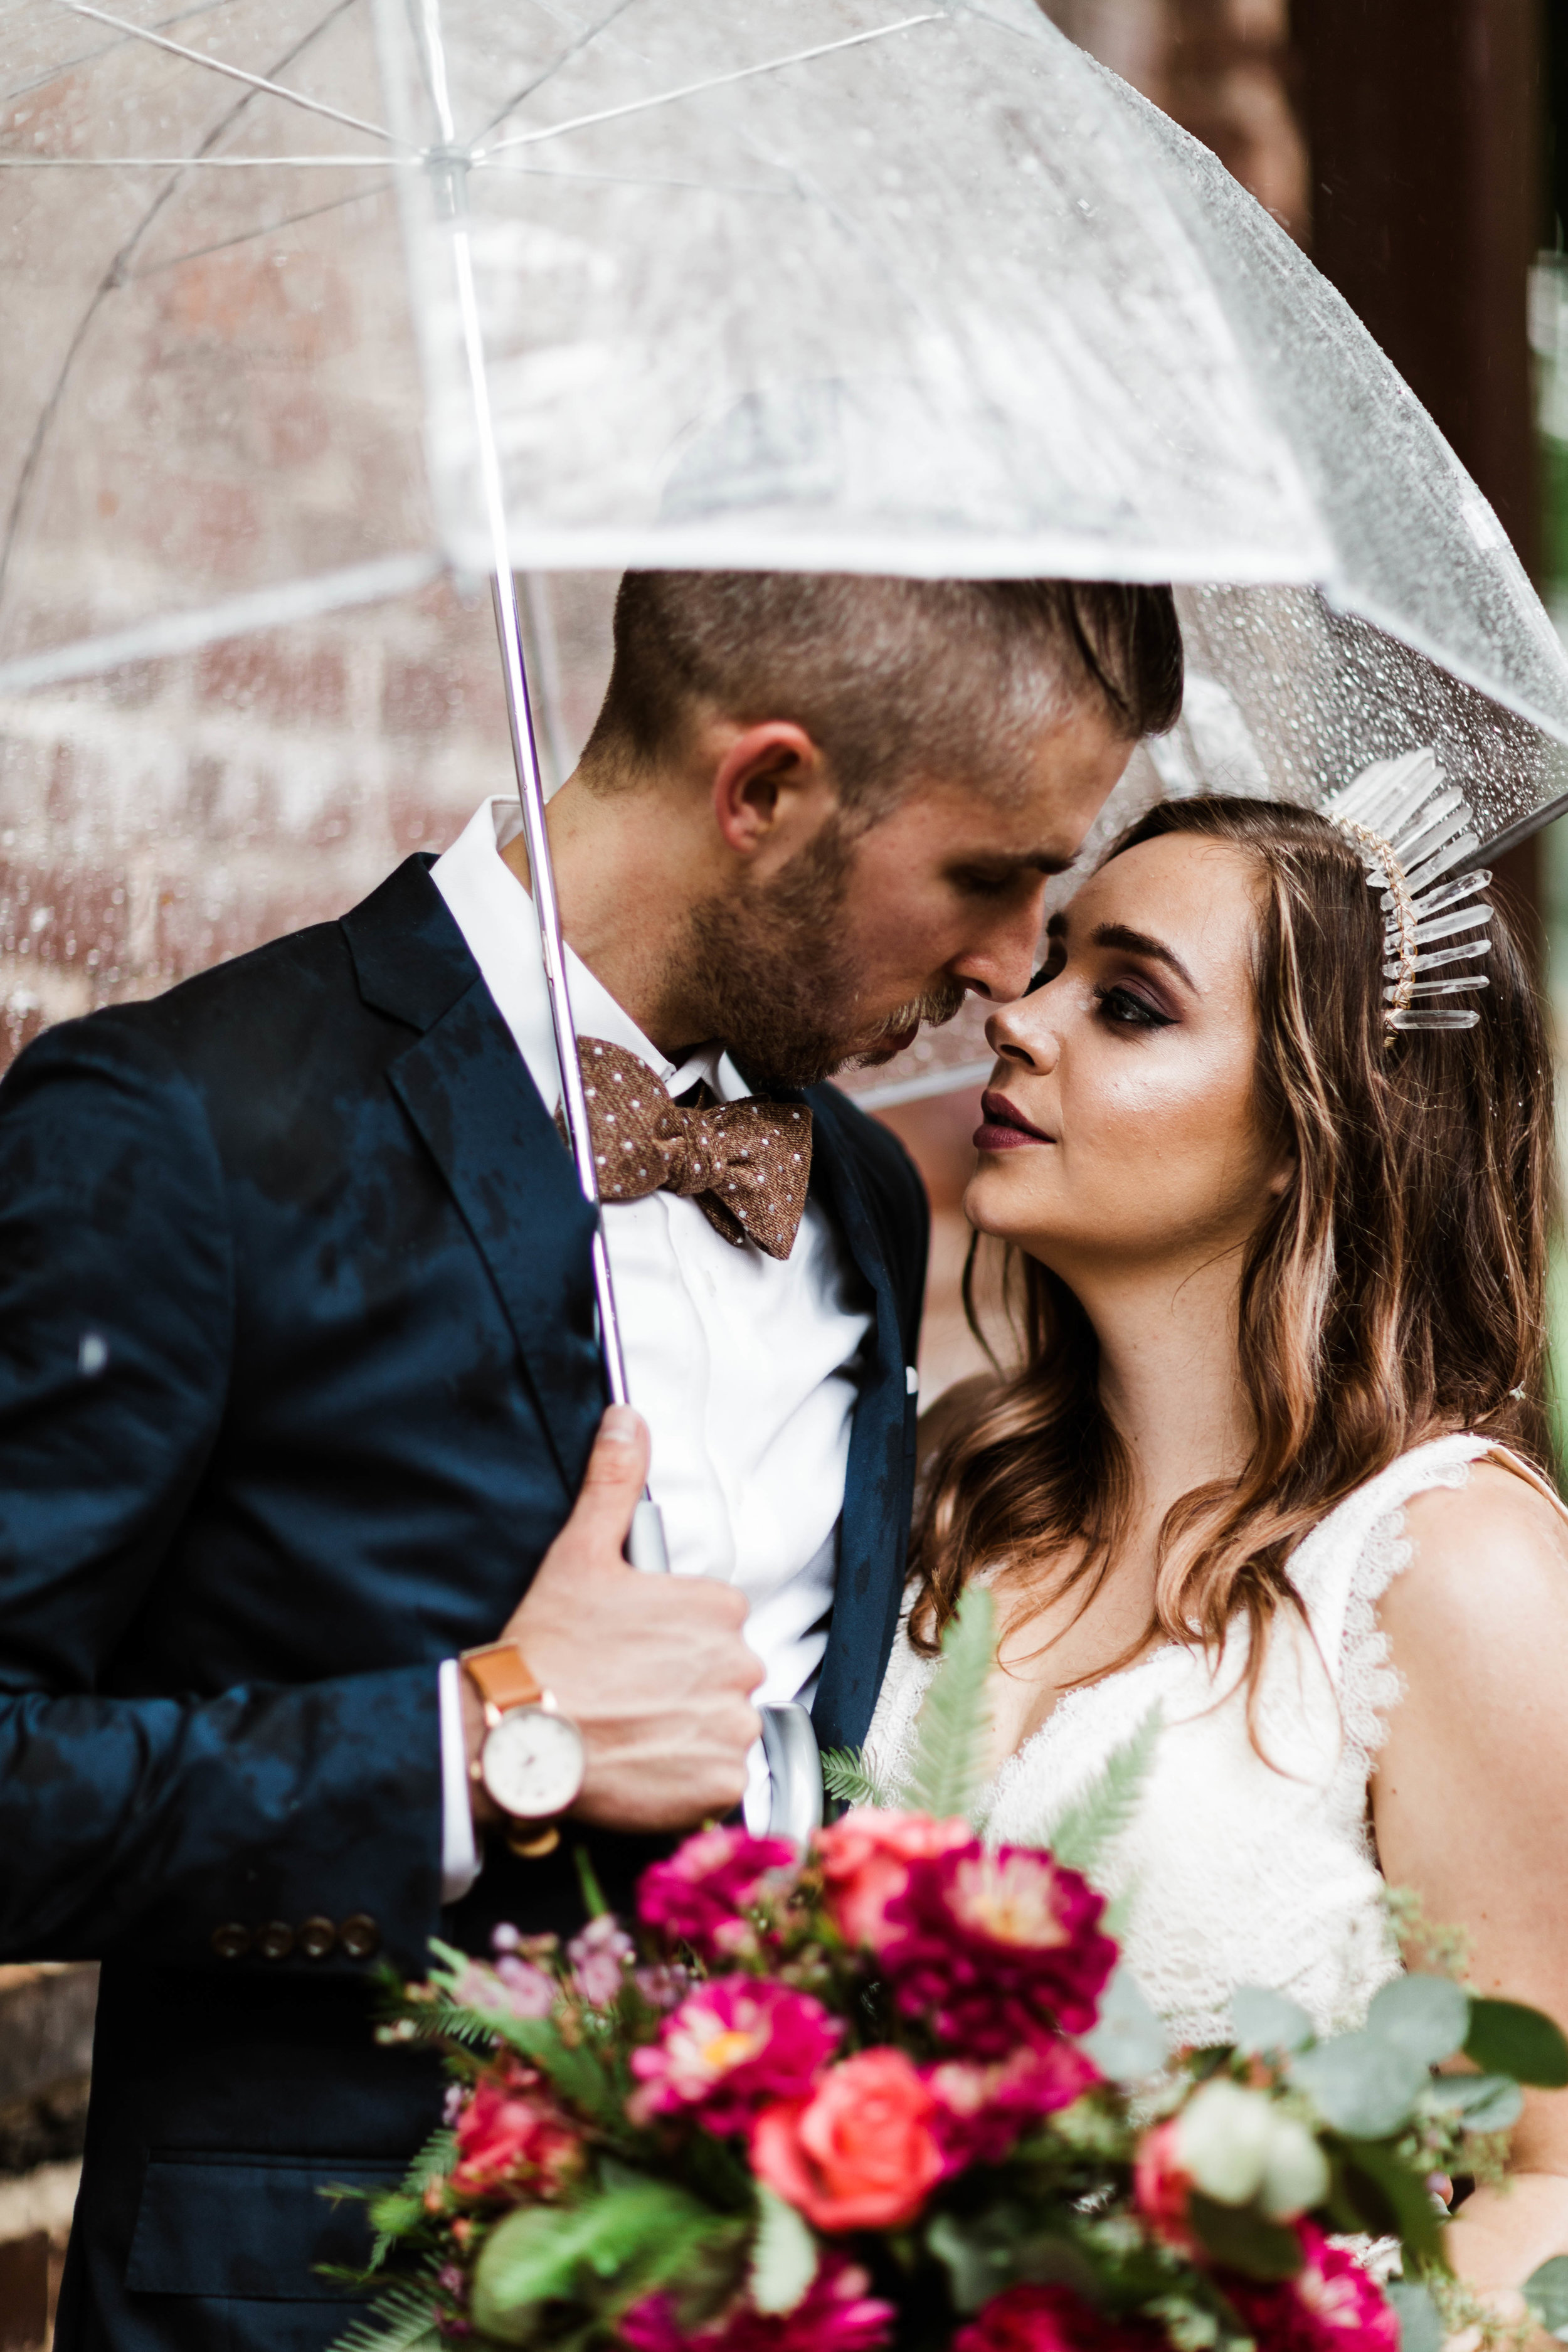 Rocky Mountain Elopement Photographers   Colorado elopement packages for adventure weddings